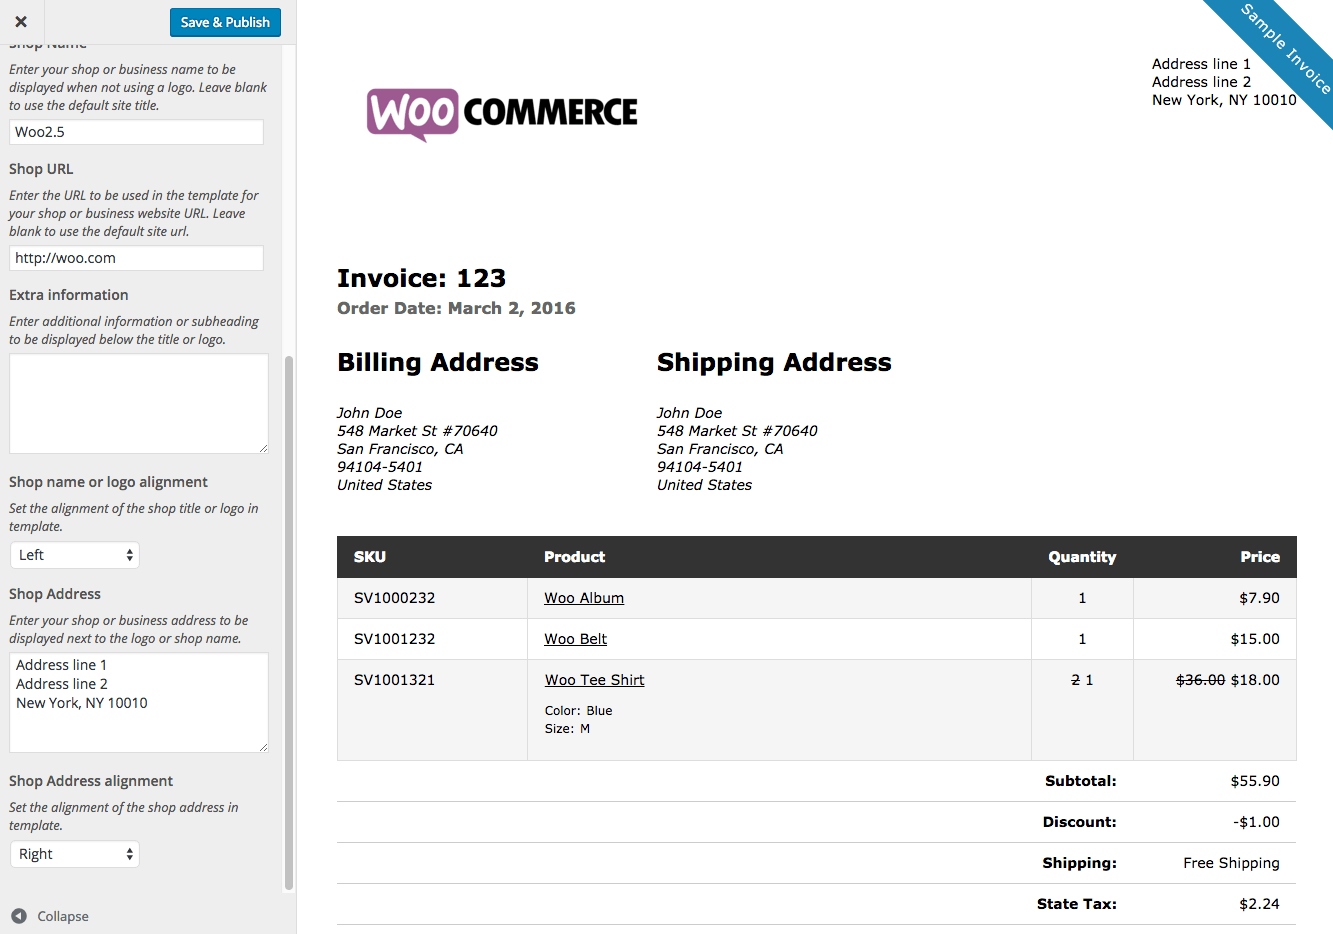 Sandiegolocksmithsus  Splendid Print Invoices Amp Packing Lists  Woocommerce With Marvelous Woocommerce Print Invoices  Packing Lists Customizer With Beauteous Invoice Payment Terms Uk Also Payment Of Invoices In Addition Invoice For Export And Invoice Template Samples As Well As How To Make Tax Invoice Additionally Hmrc Vat Invoice From Woocommercecom With Sandiegolocksmithsus  Marvelous Print Invoices Amp Packing Lists  Woocommerce With Beauteous Woocommerce Print Invoices  Packing Lists Customizer And Splendid Invoice Payment Terms Uk Also Payment Of Invoices In Addition Invoice For Export From Woocommercecom